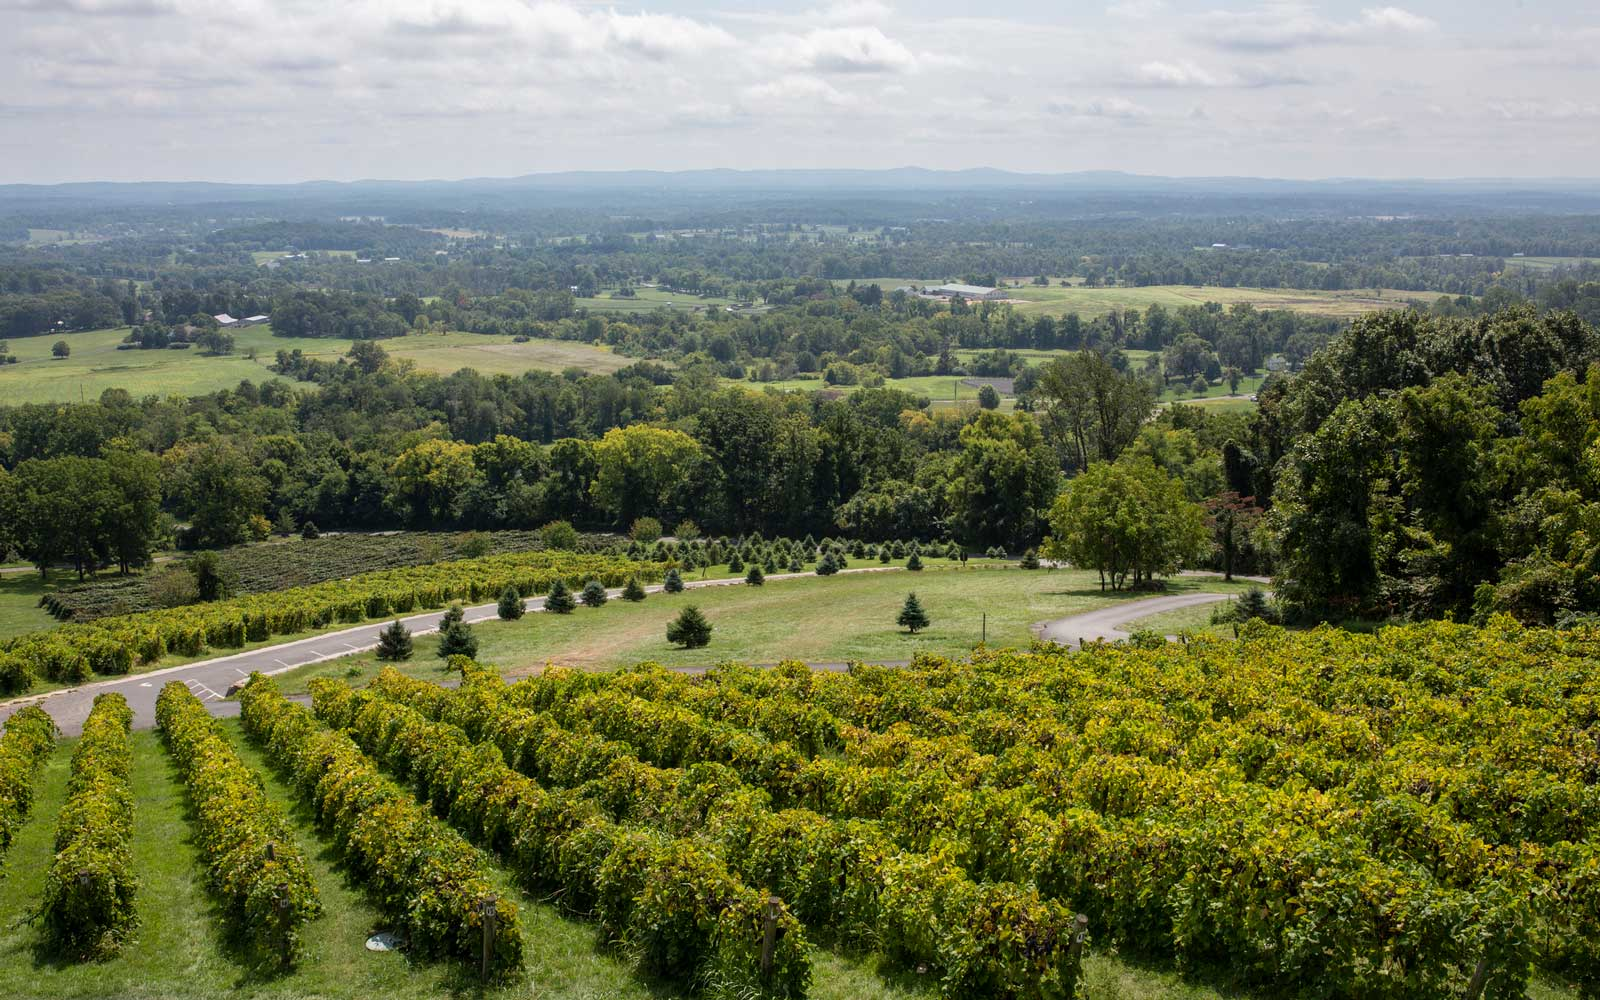 Vineyard in North Virginia